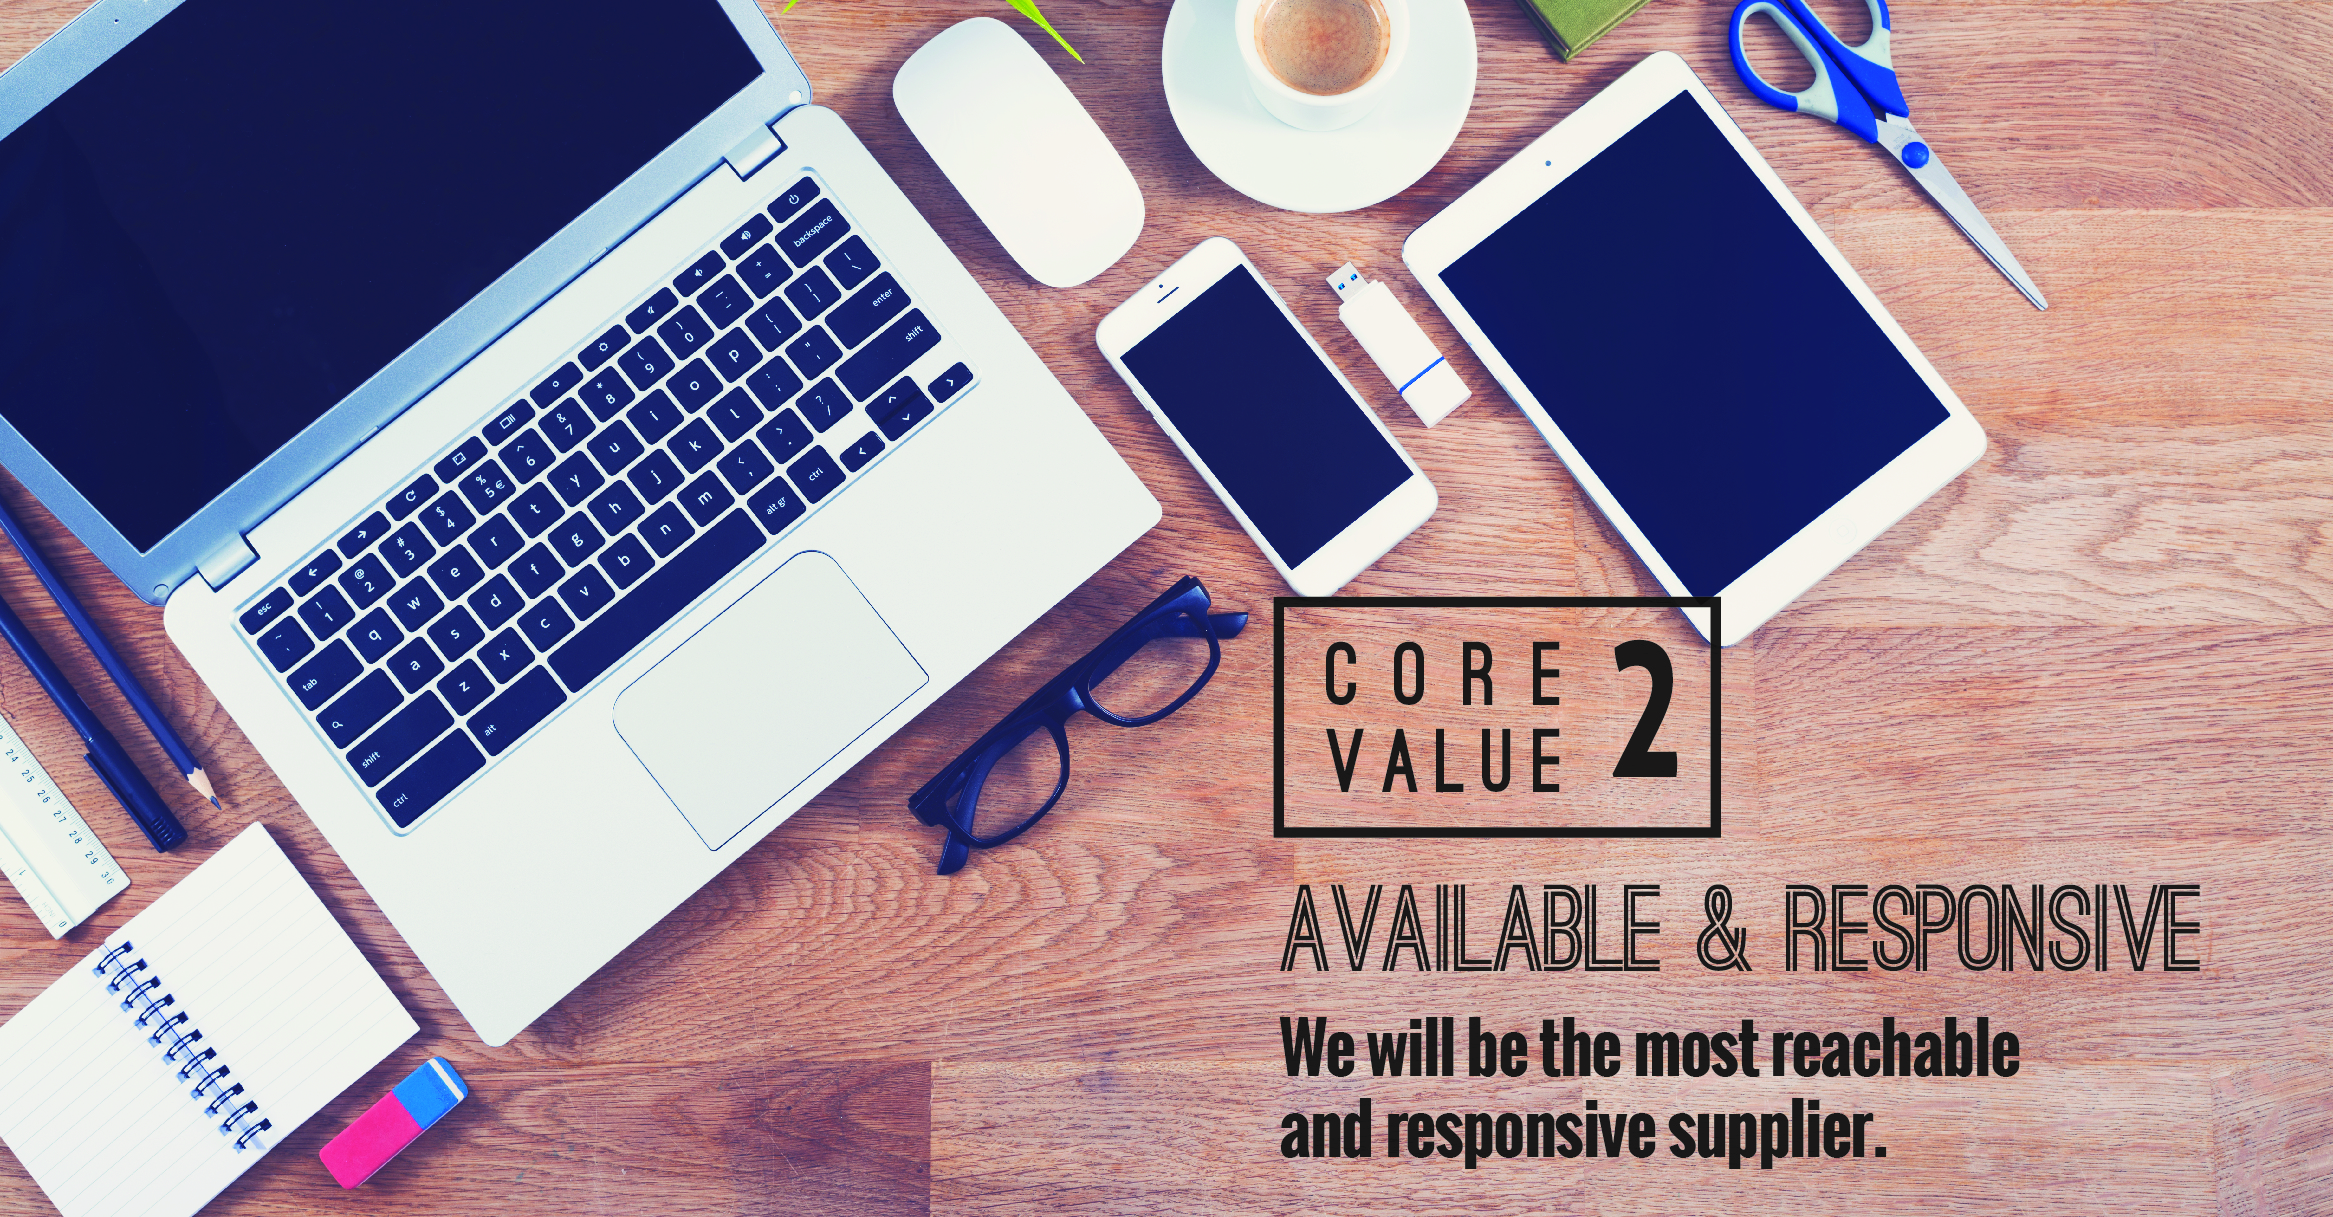 Core_Value_2_-_Available_and_Responsive-01.jpg